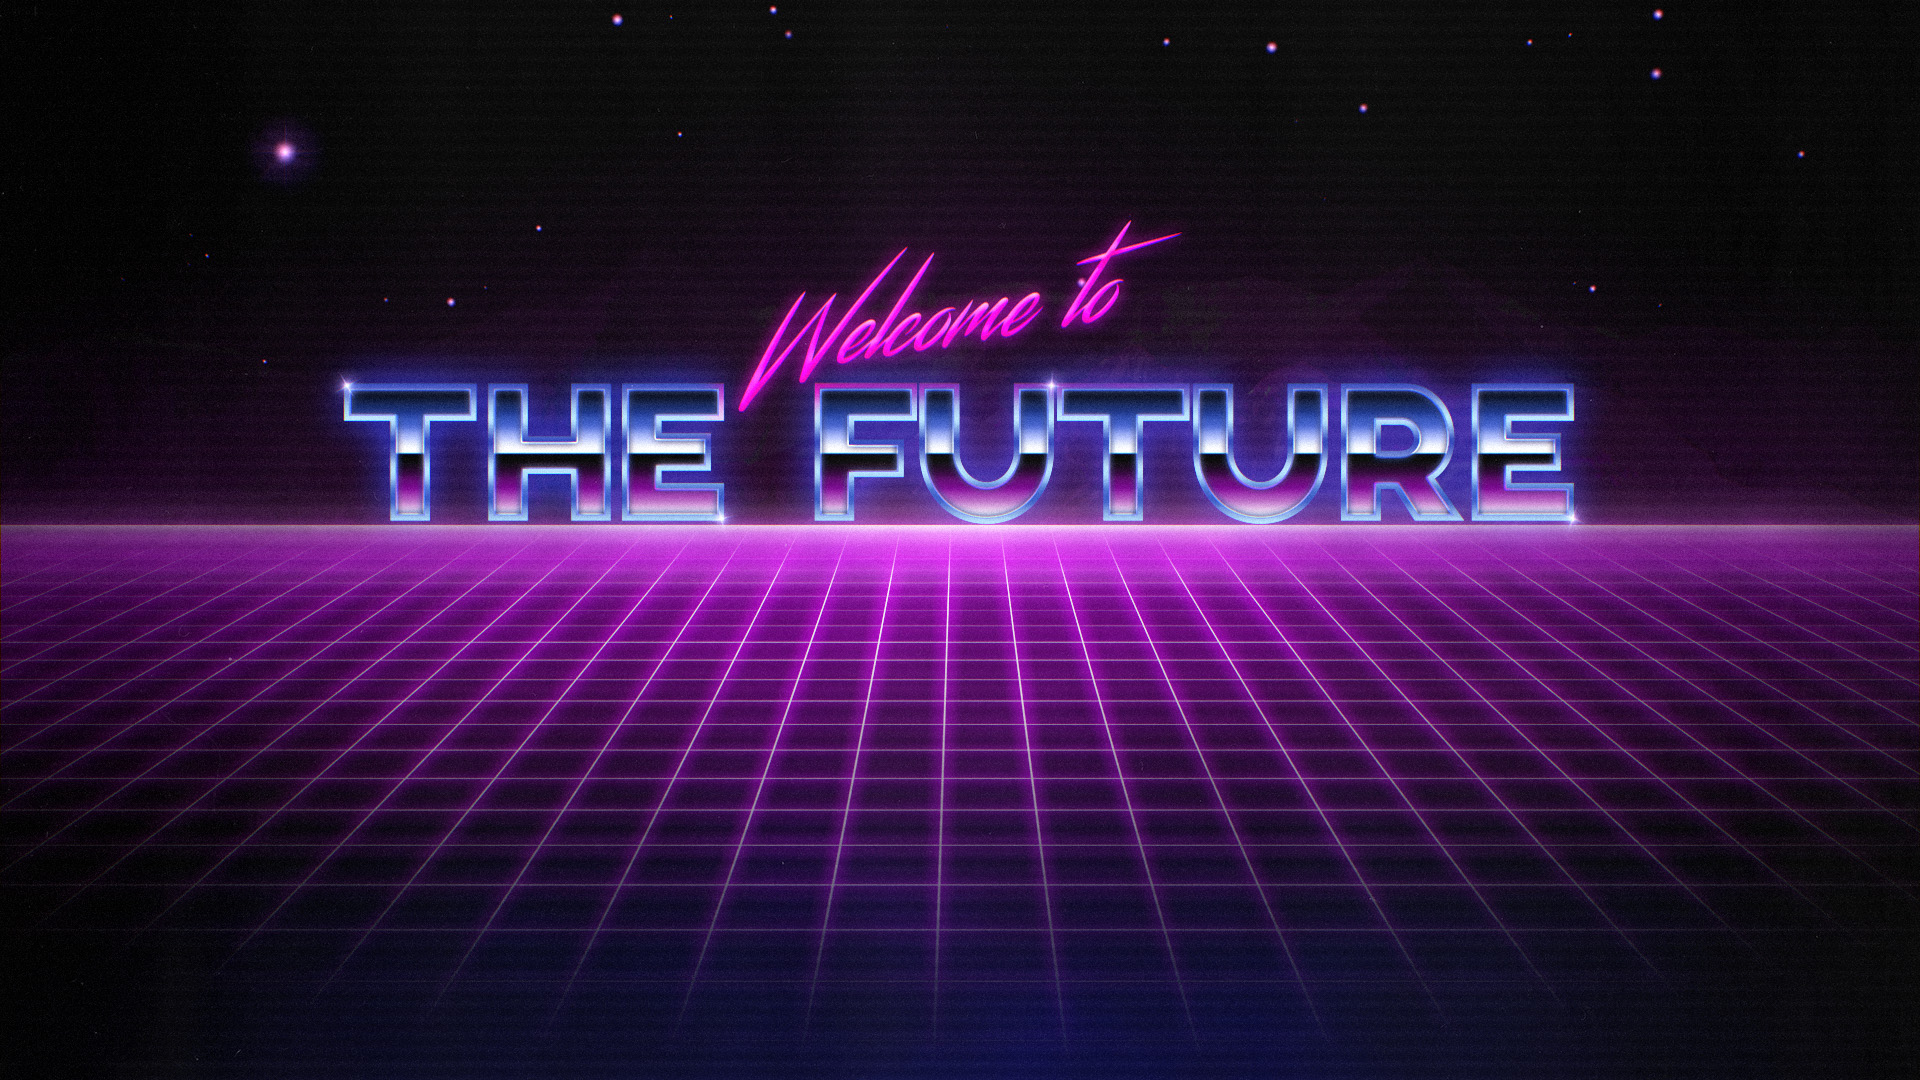 General 1920x1080 OutRun synthwave cyberpunk futuristic 1980s Muse  Retrowave